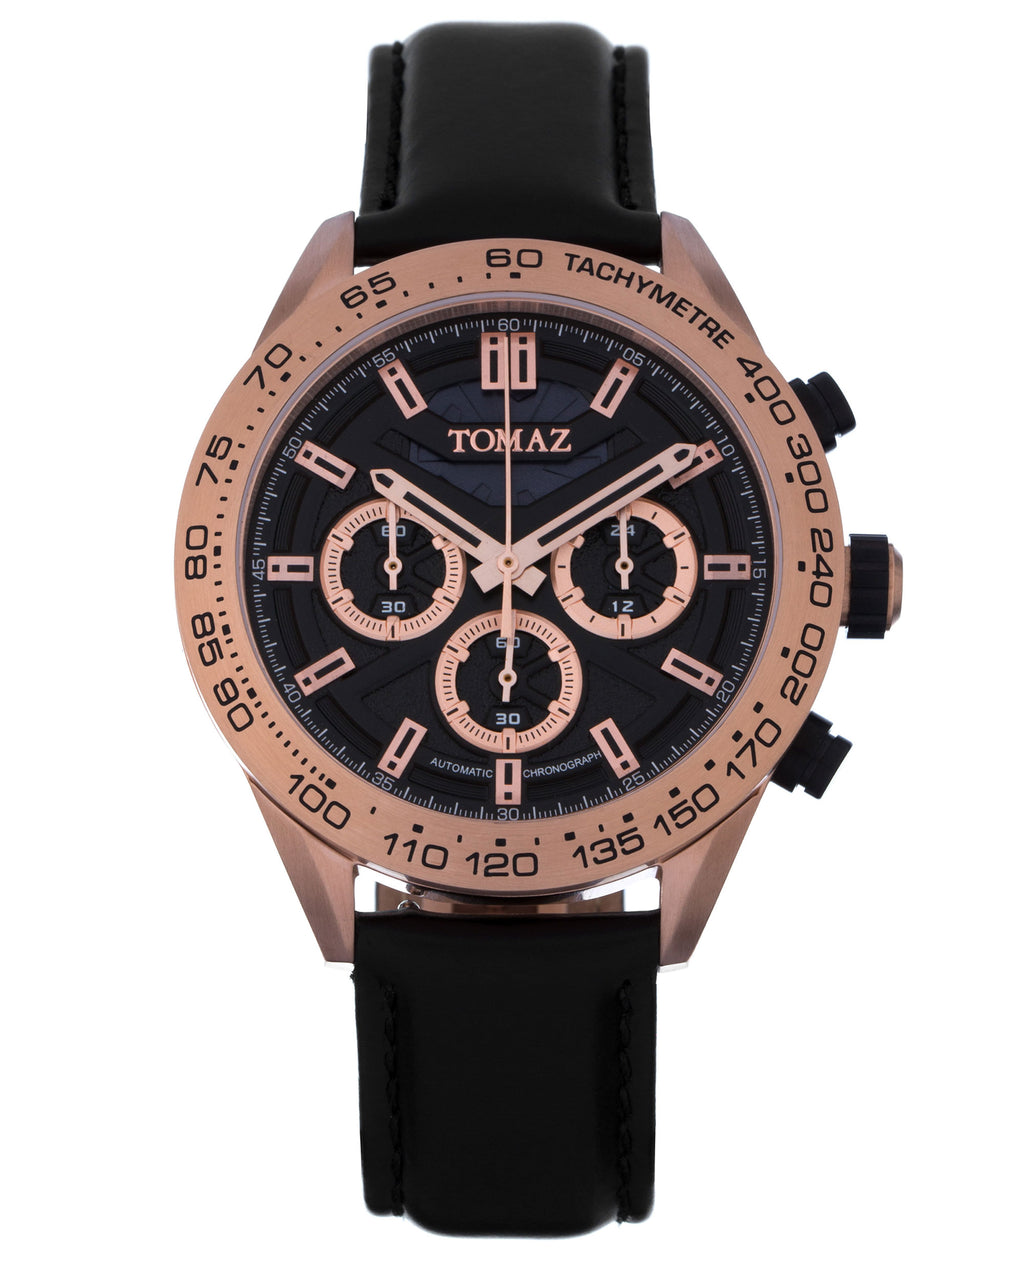 Tomaz Men's Watch TW011 D7 (RoseGold/Black)